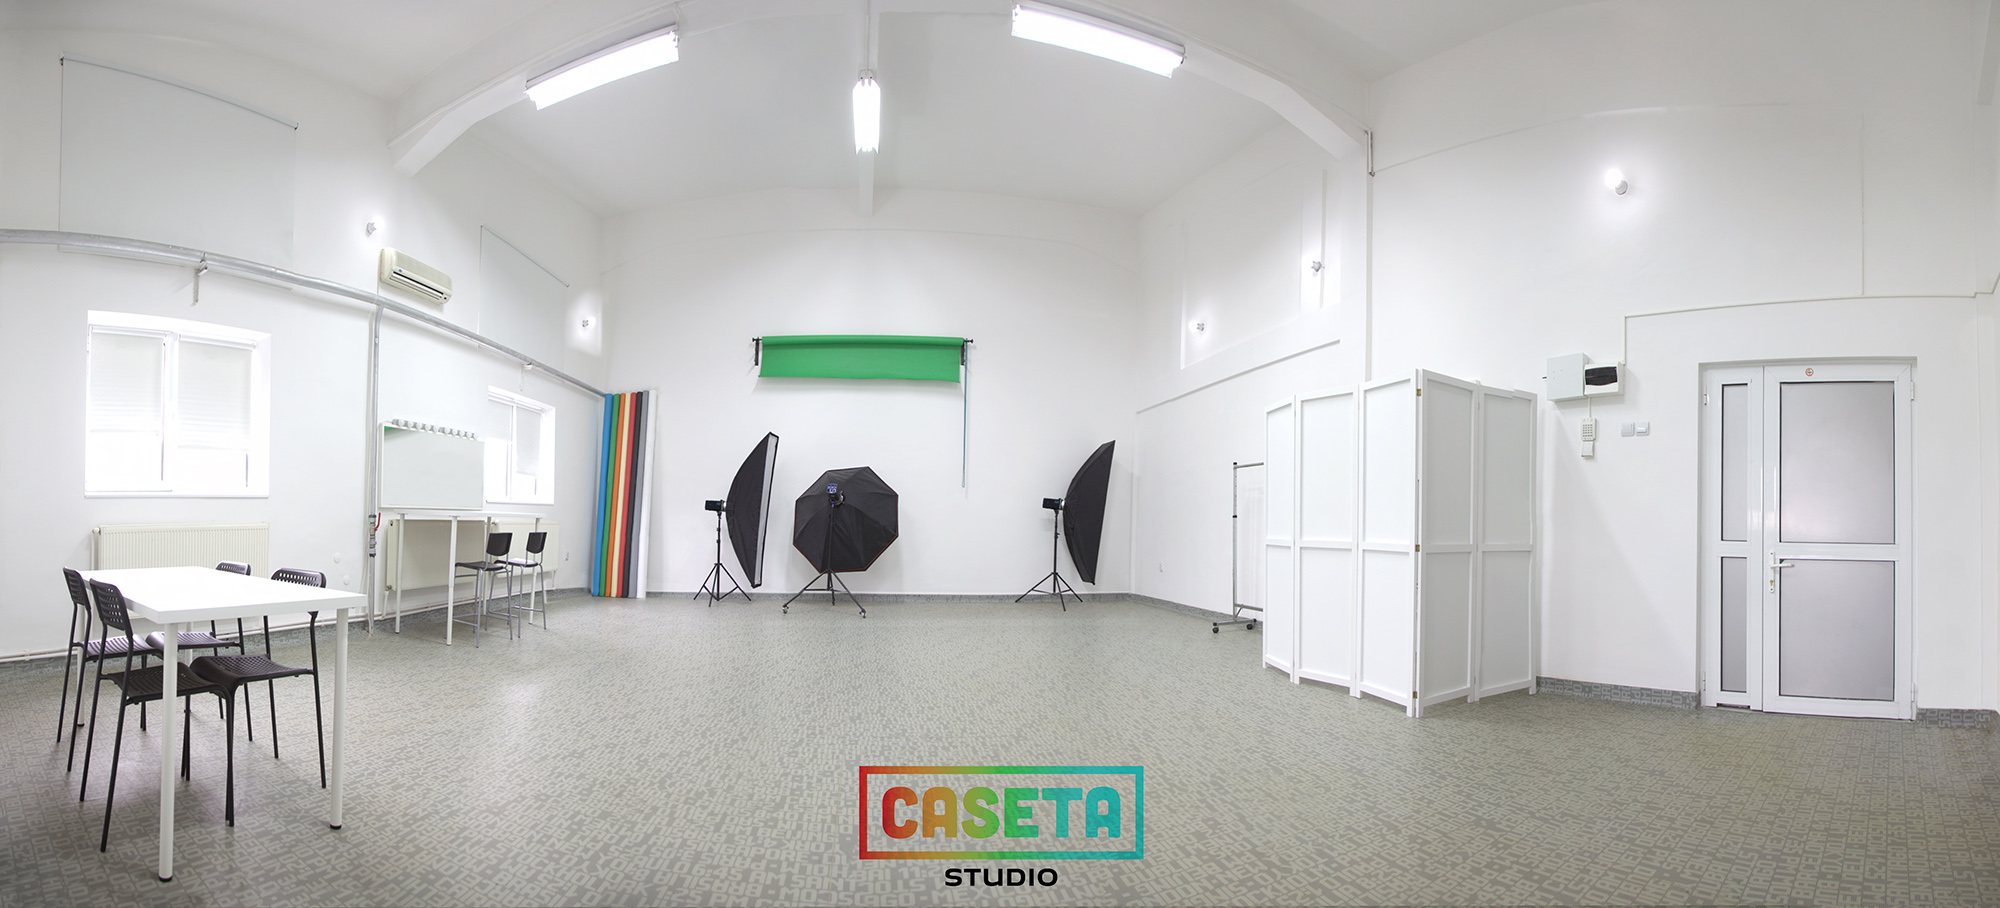 Caseta Studio - studio foto si productie video din 2005